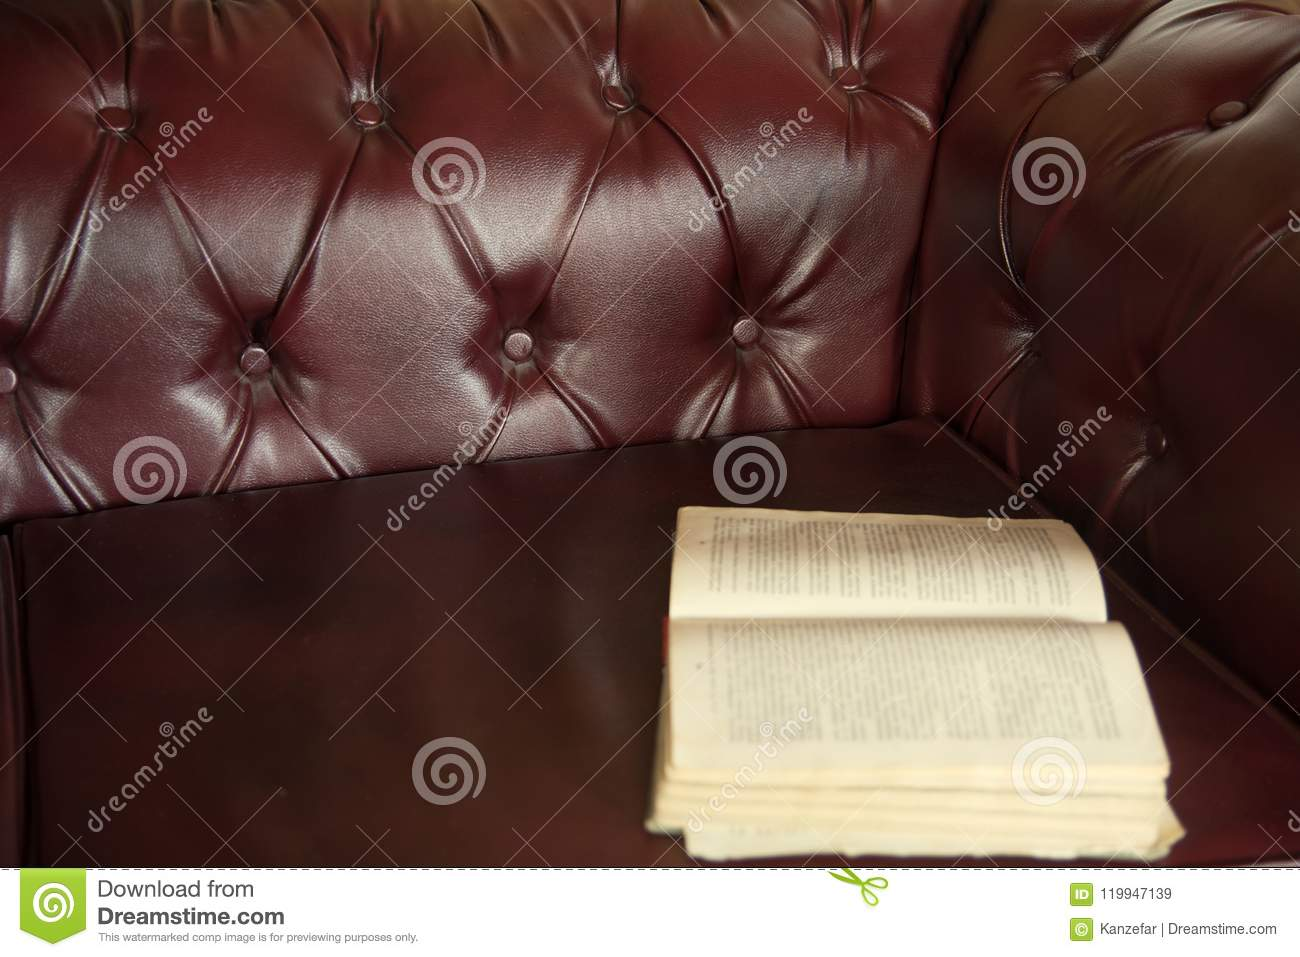 Background Is An Open Old Book On A Claret Colored Leather Sofa